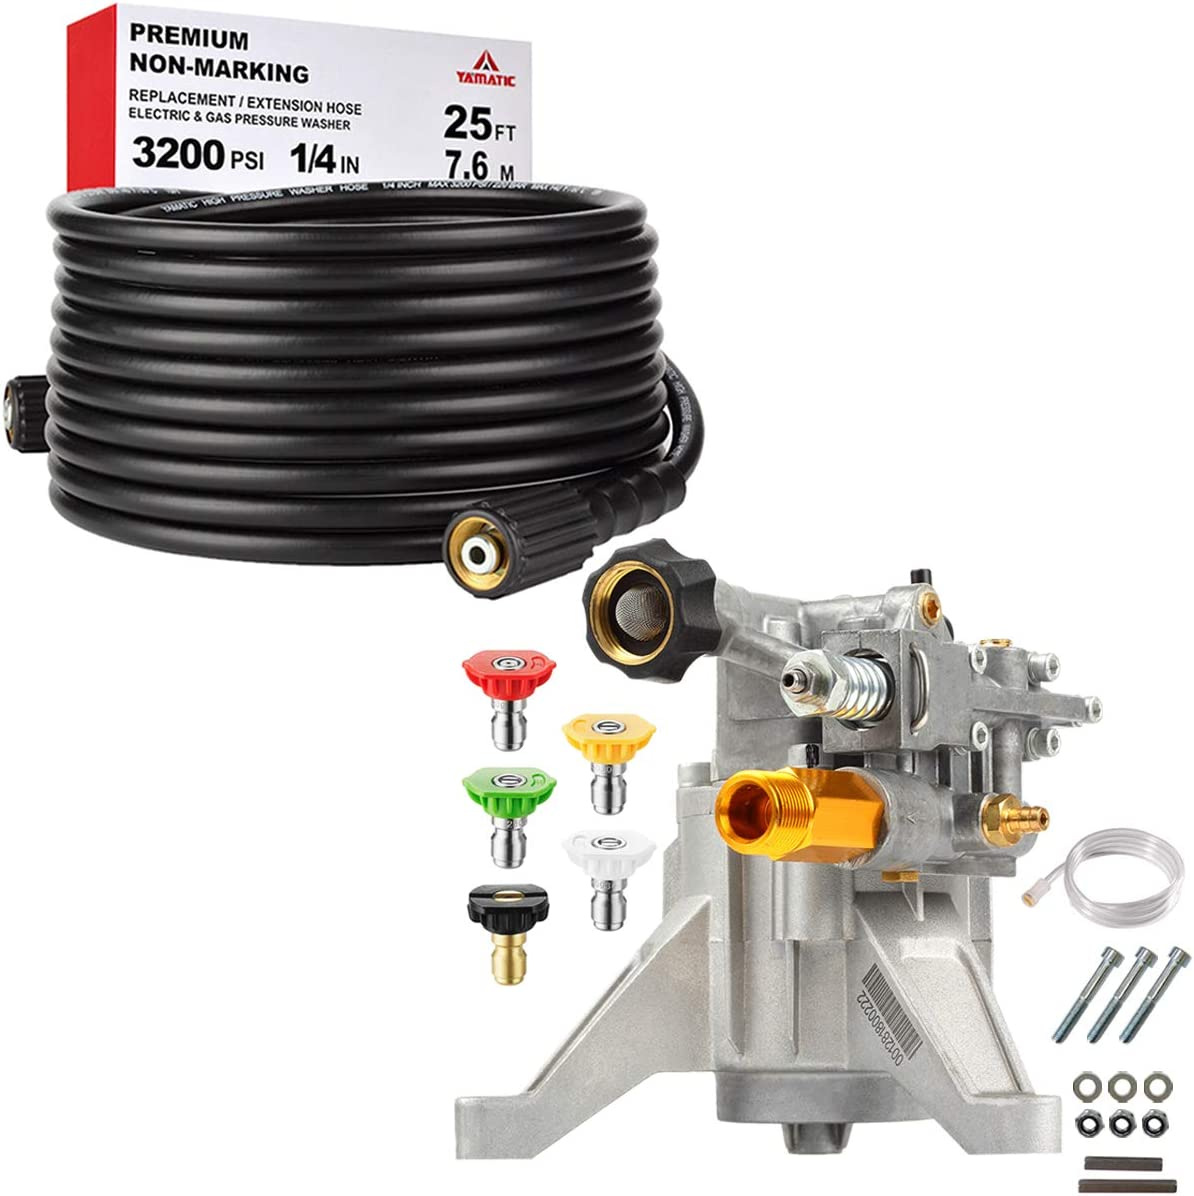 """YAMATIC 3200 PSI Pressure Washer Hose Pump Set, Vertical 7/8"""" Pump with Spray Nozzle Tips, 25 FT X 1/4 Inch Power Washer Hose"""